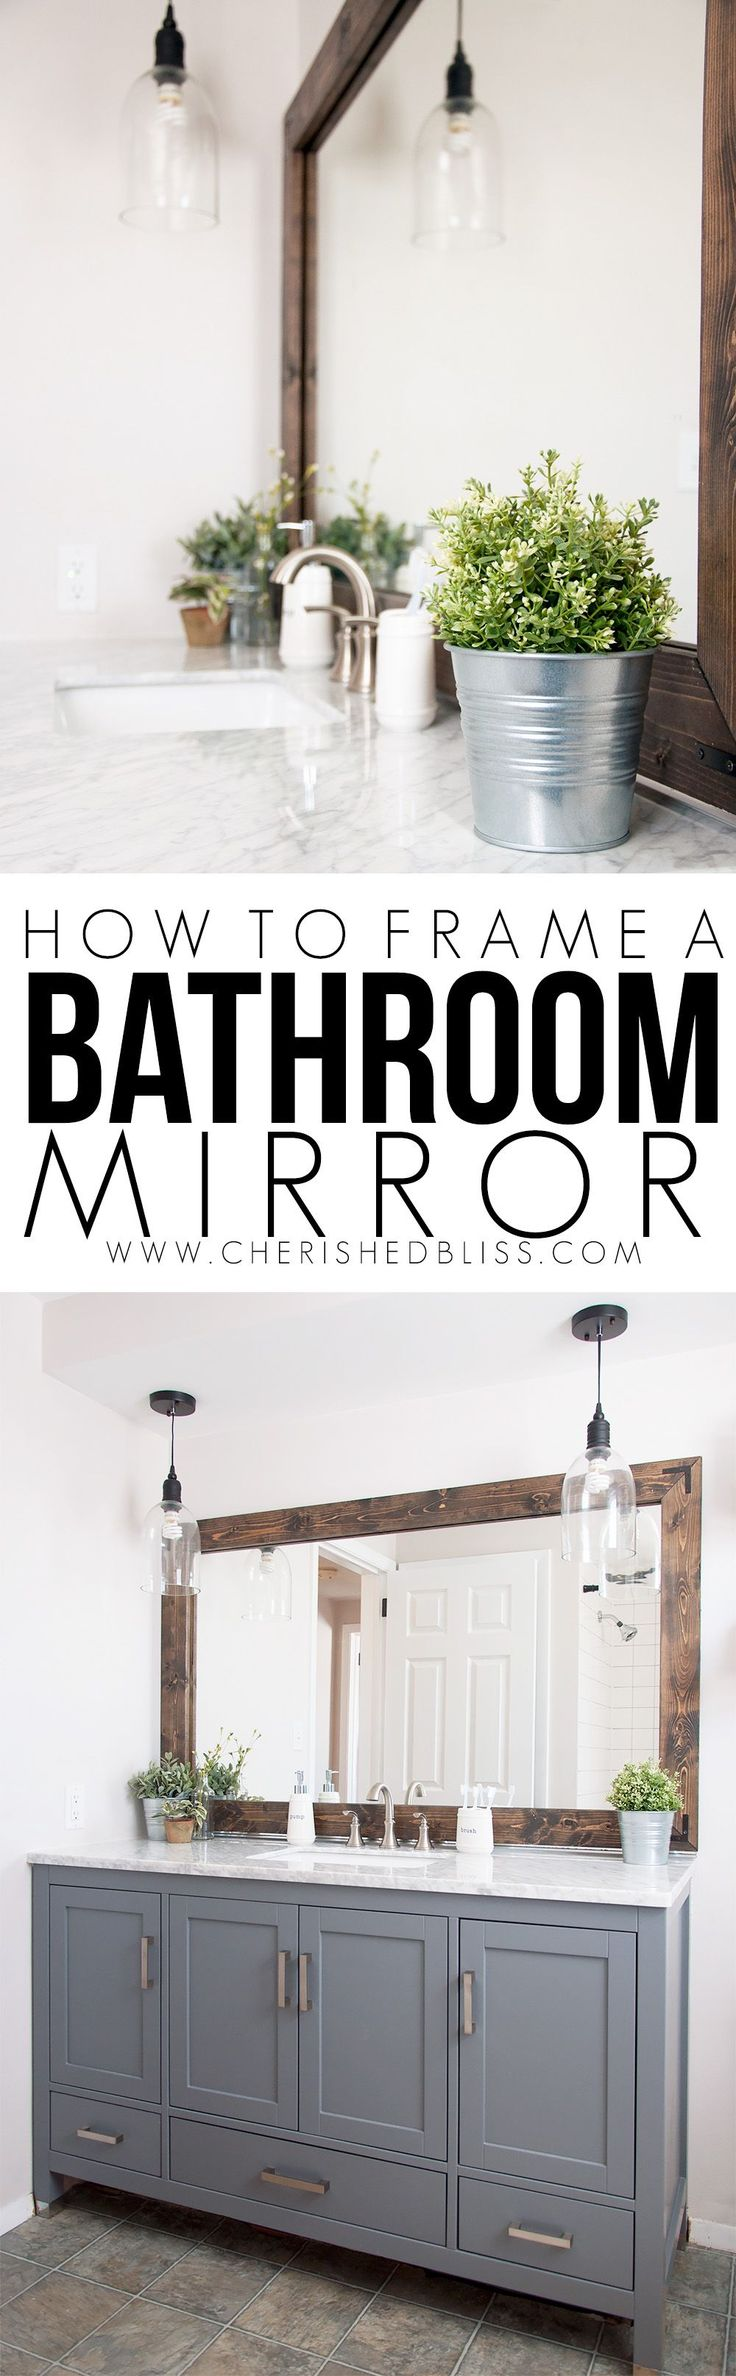 Framed bathroom mirrors ideas - How To Frame A Bathroom Mirror